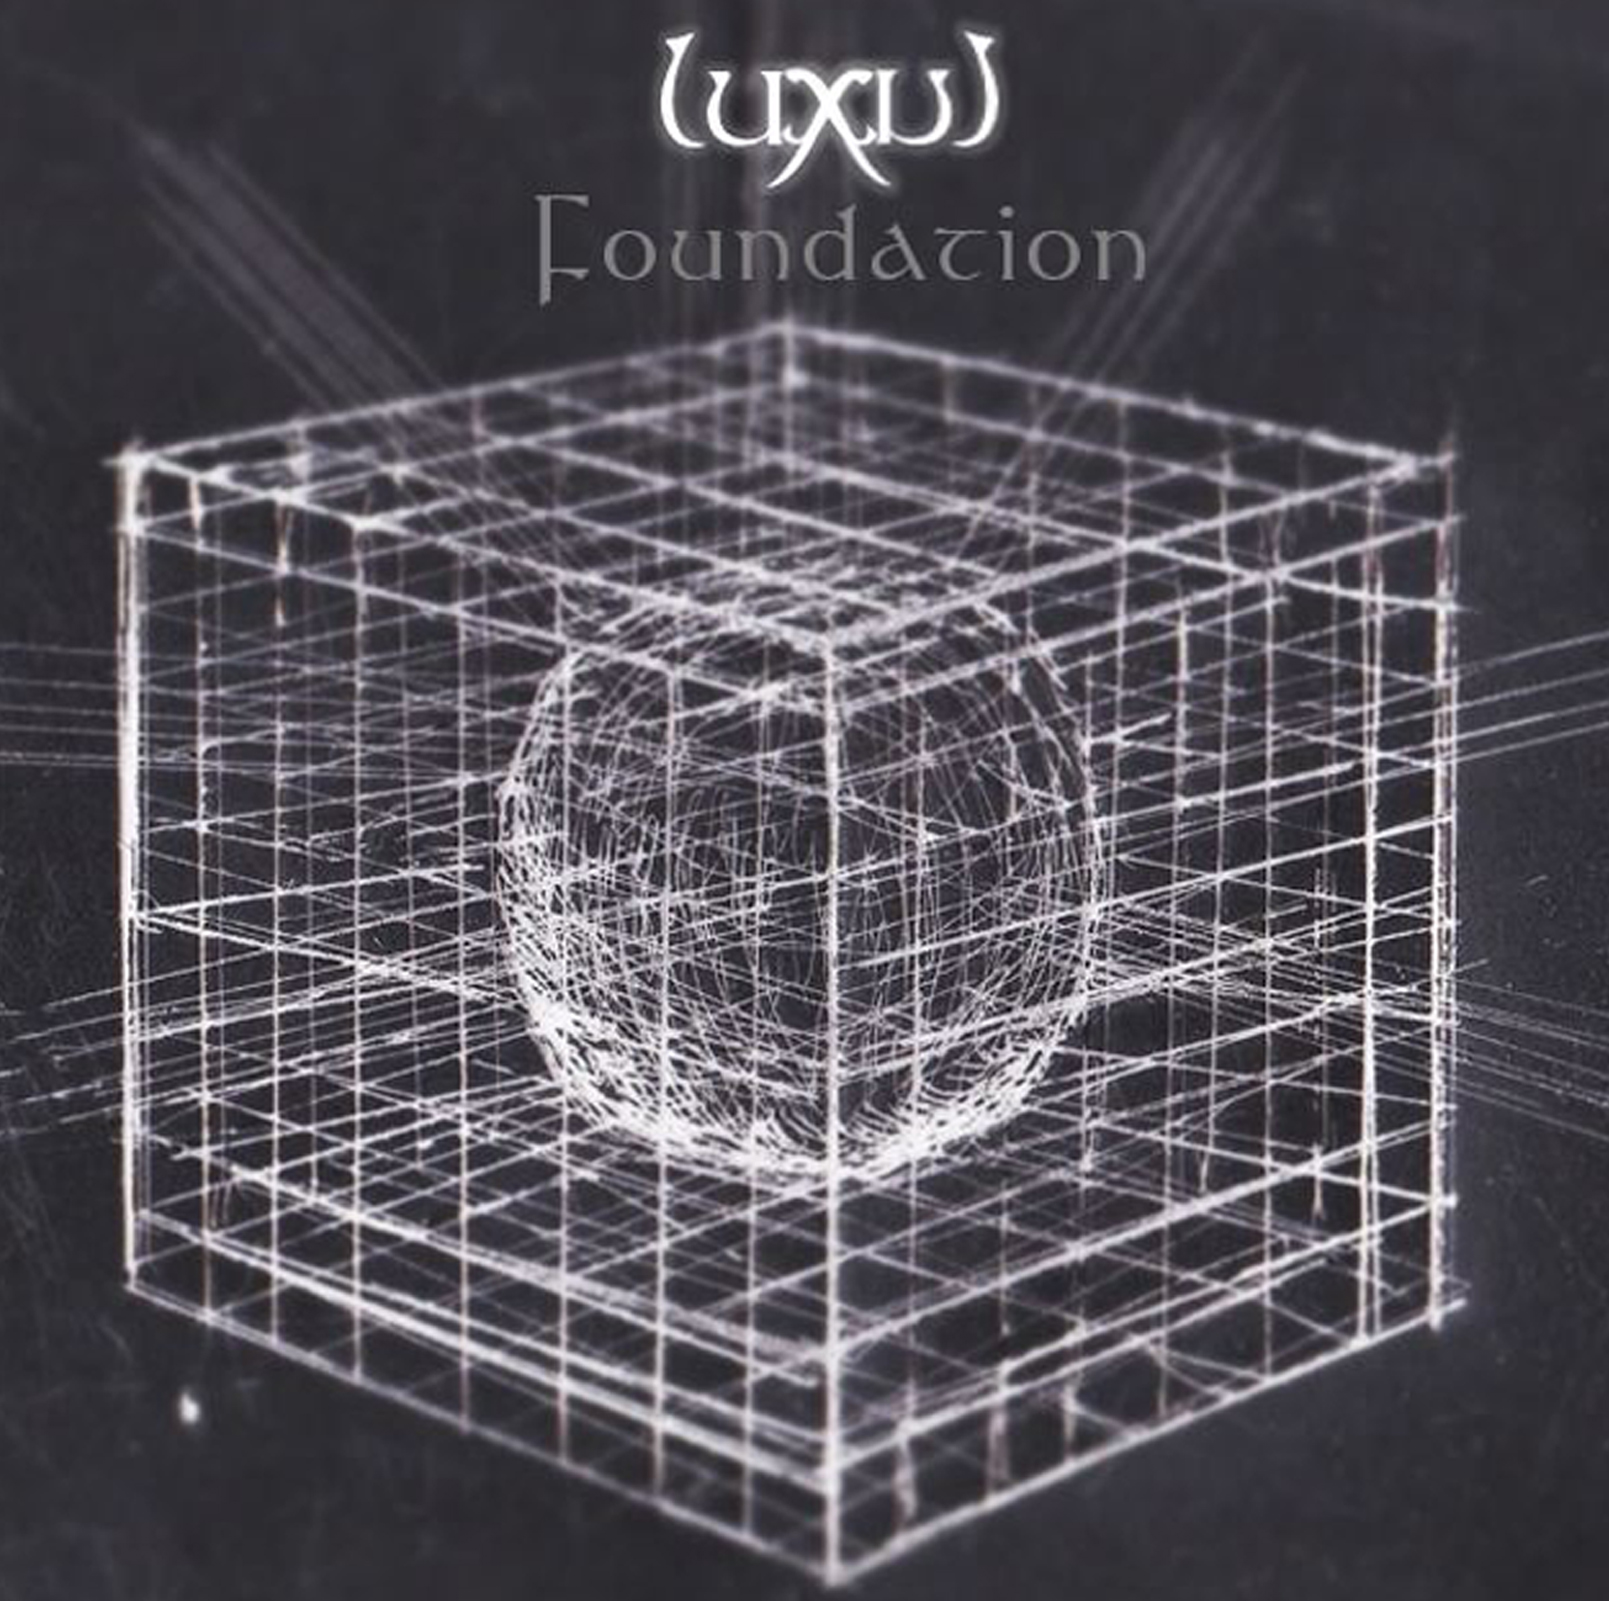 Exclusive Listen: LUXUL Debut album 'Foundation' (on Sublunar Society)